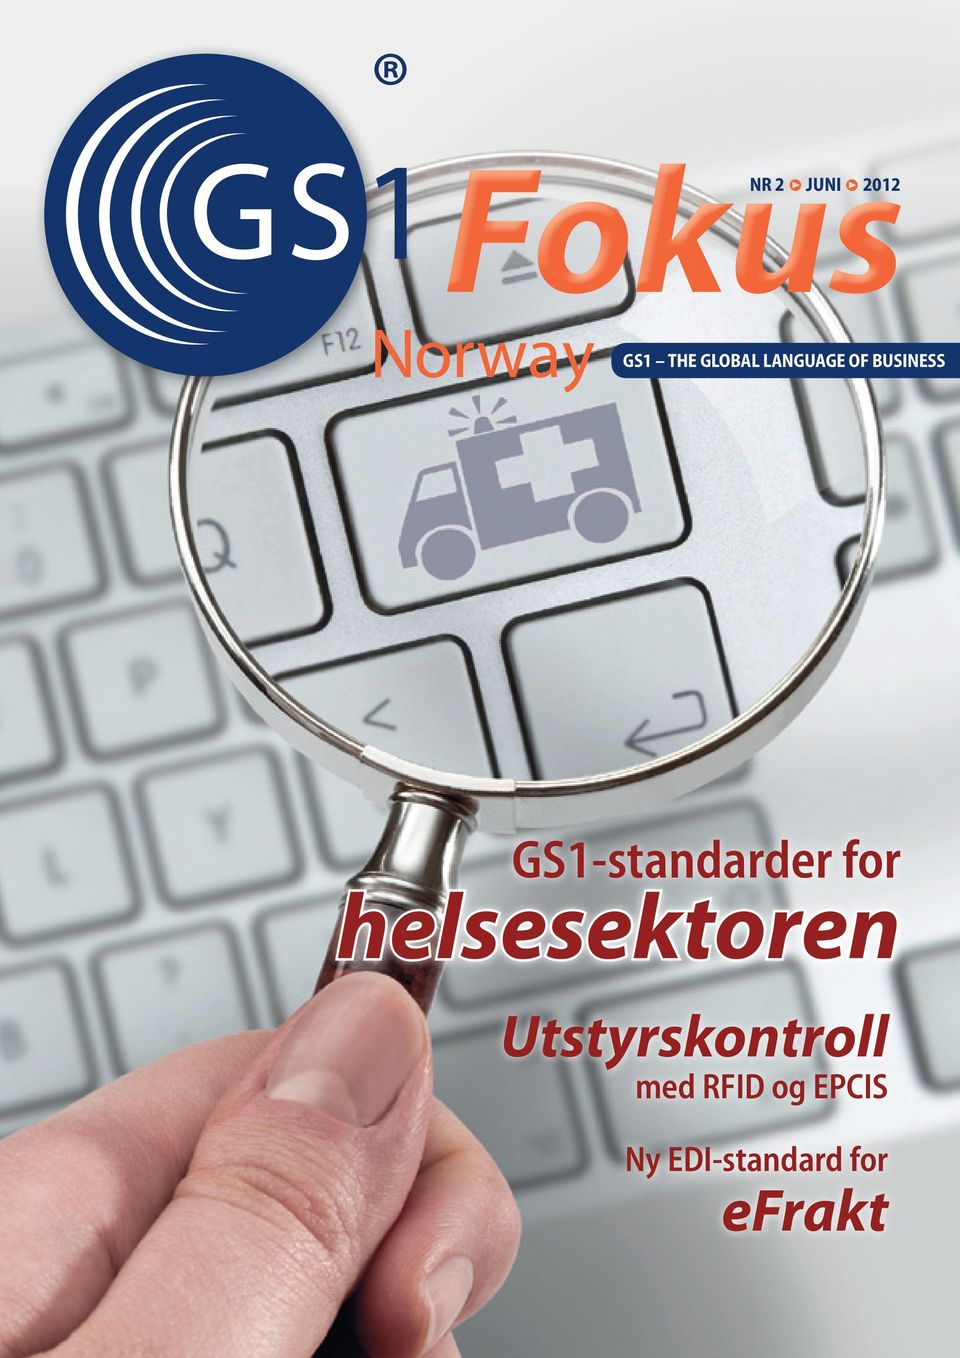 GS1-standarder for helsesektoren